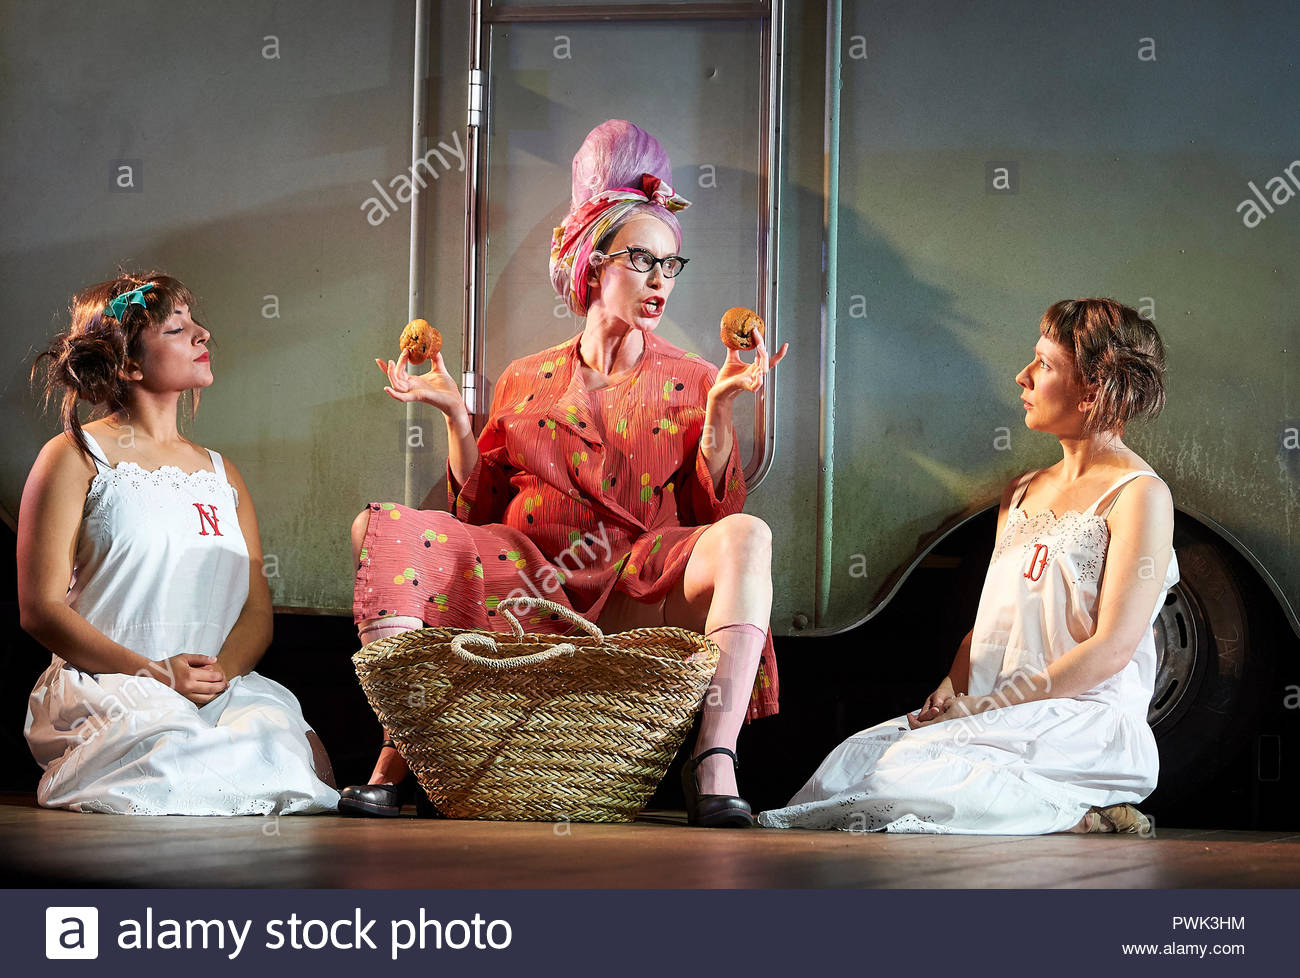 London, UK. 15th October, 2018. Wise Children by Angela Carter, adapted and directed by Emma Rice. With Mirabelle Gremaud as Young Nora, Katy Owen as Grandma Chance, Bettys Jones as Young Dora. Opens at The Old Vic Theatre on 19/10/18. CREDIT Geraint Lewis EDITORIAL USE ONLY Credit: Geraint Lewis/Alamy Live News - Stock Image